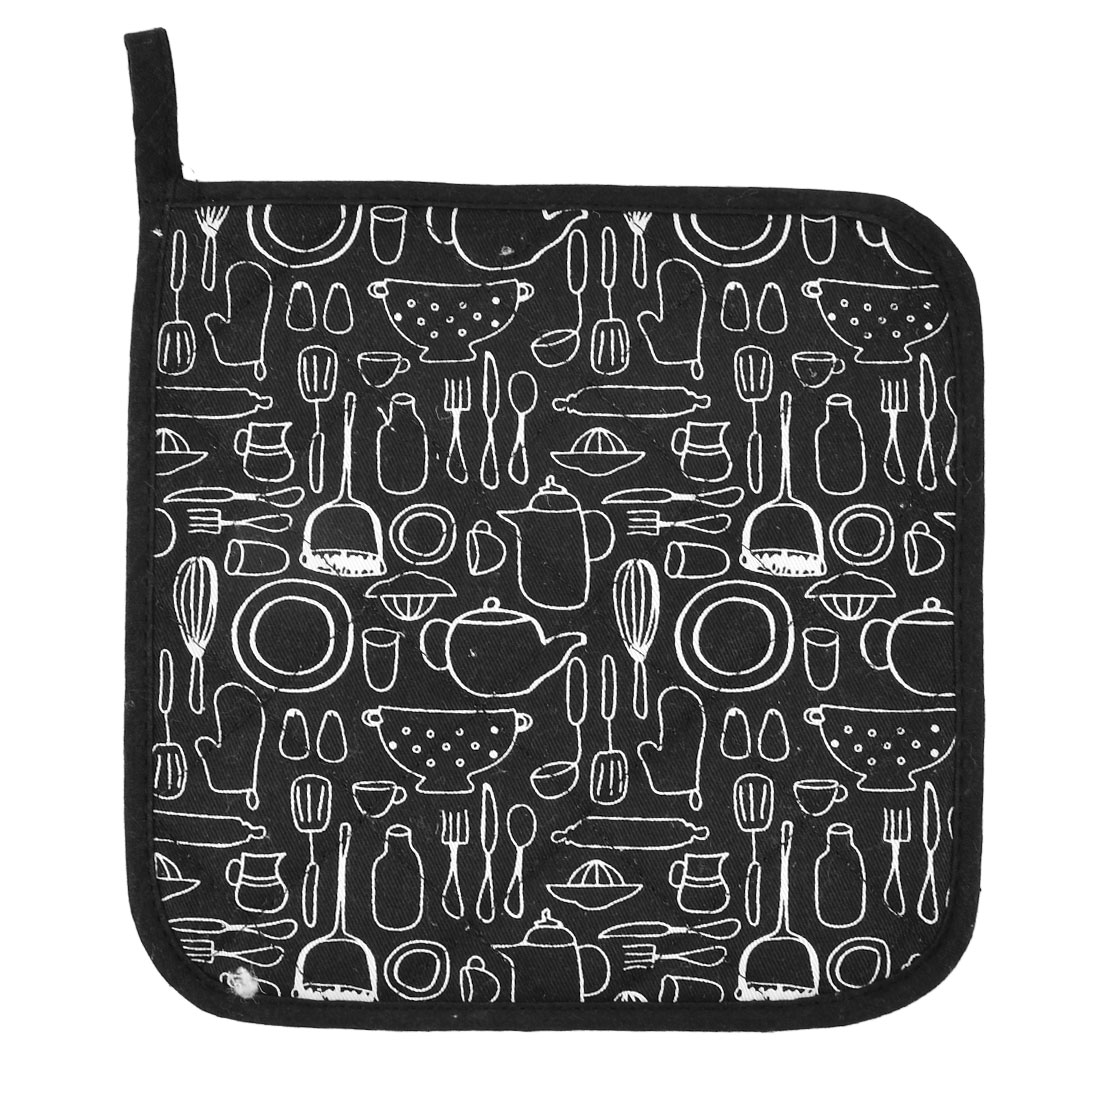 Home Kitchen Cotton Heat Resistant Dish Plate Mat Placemat Potholder Black